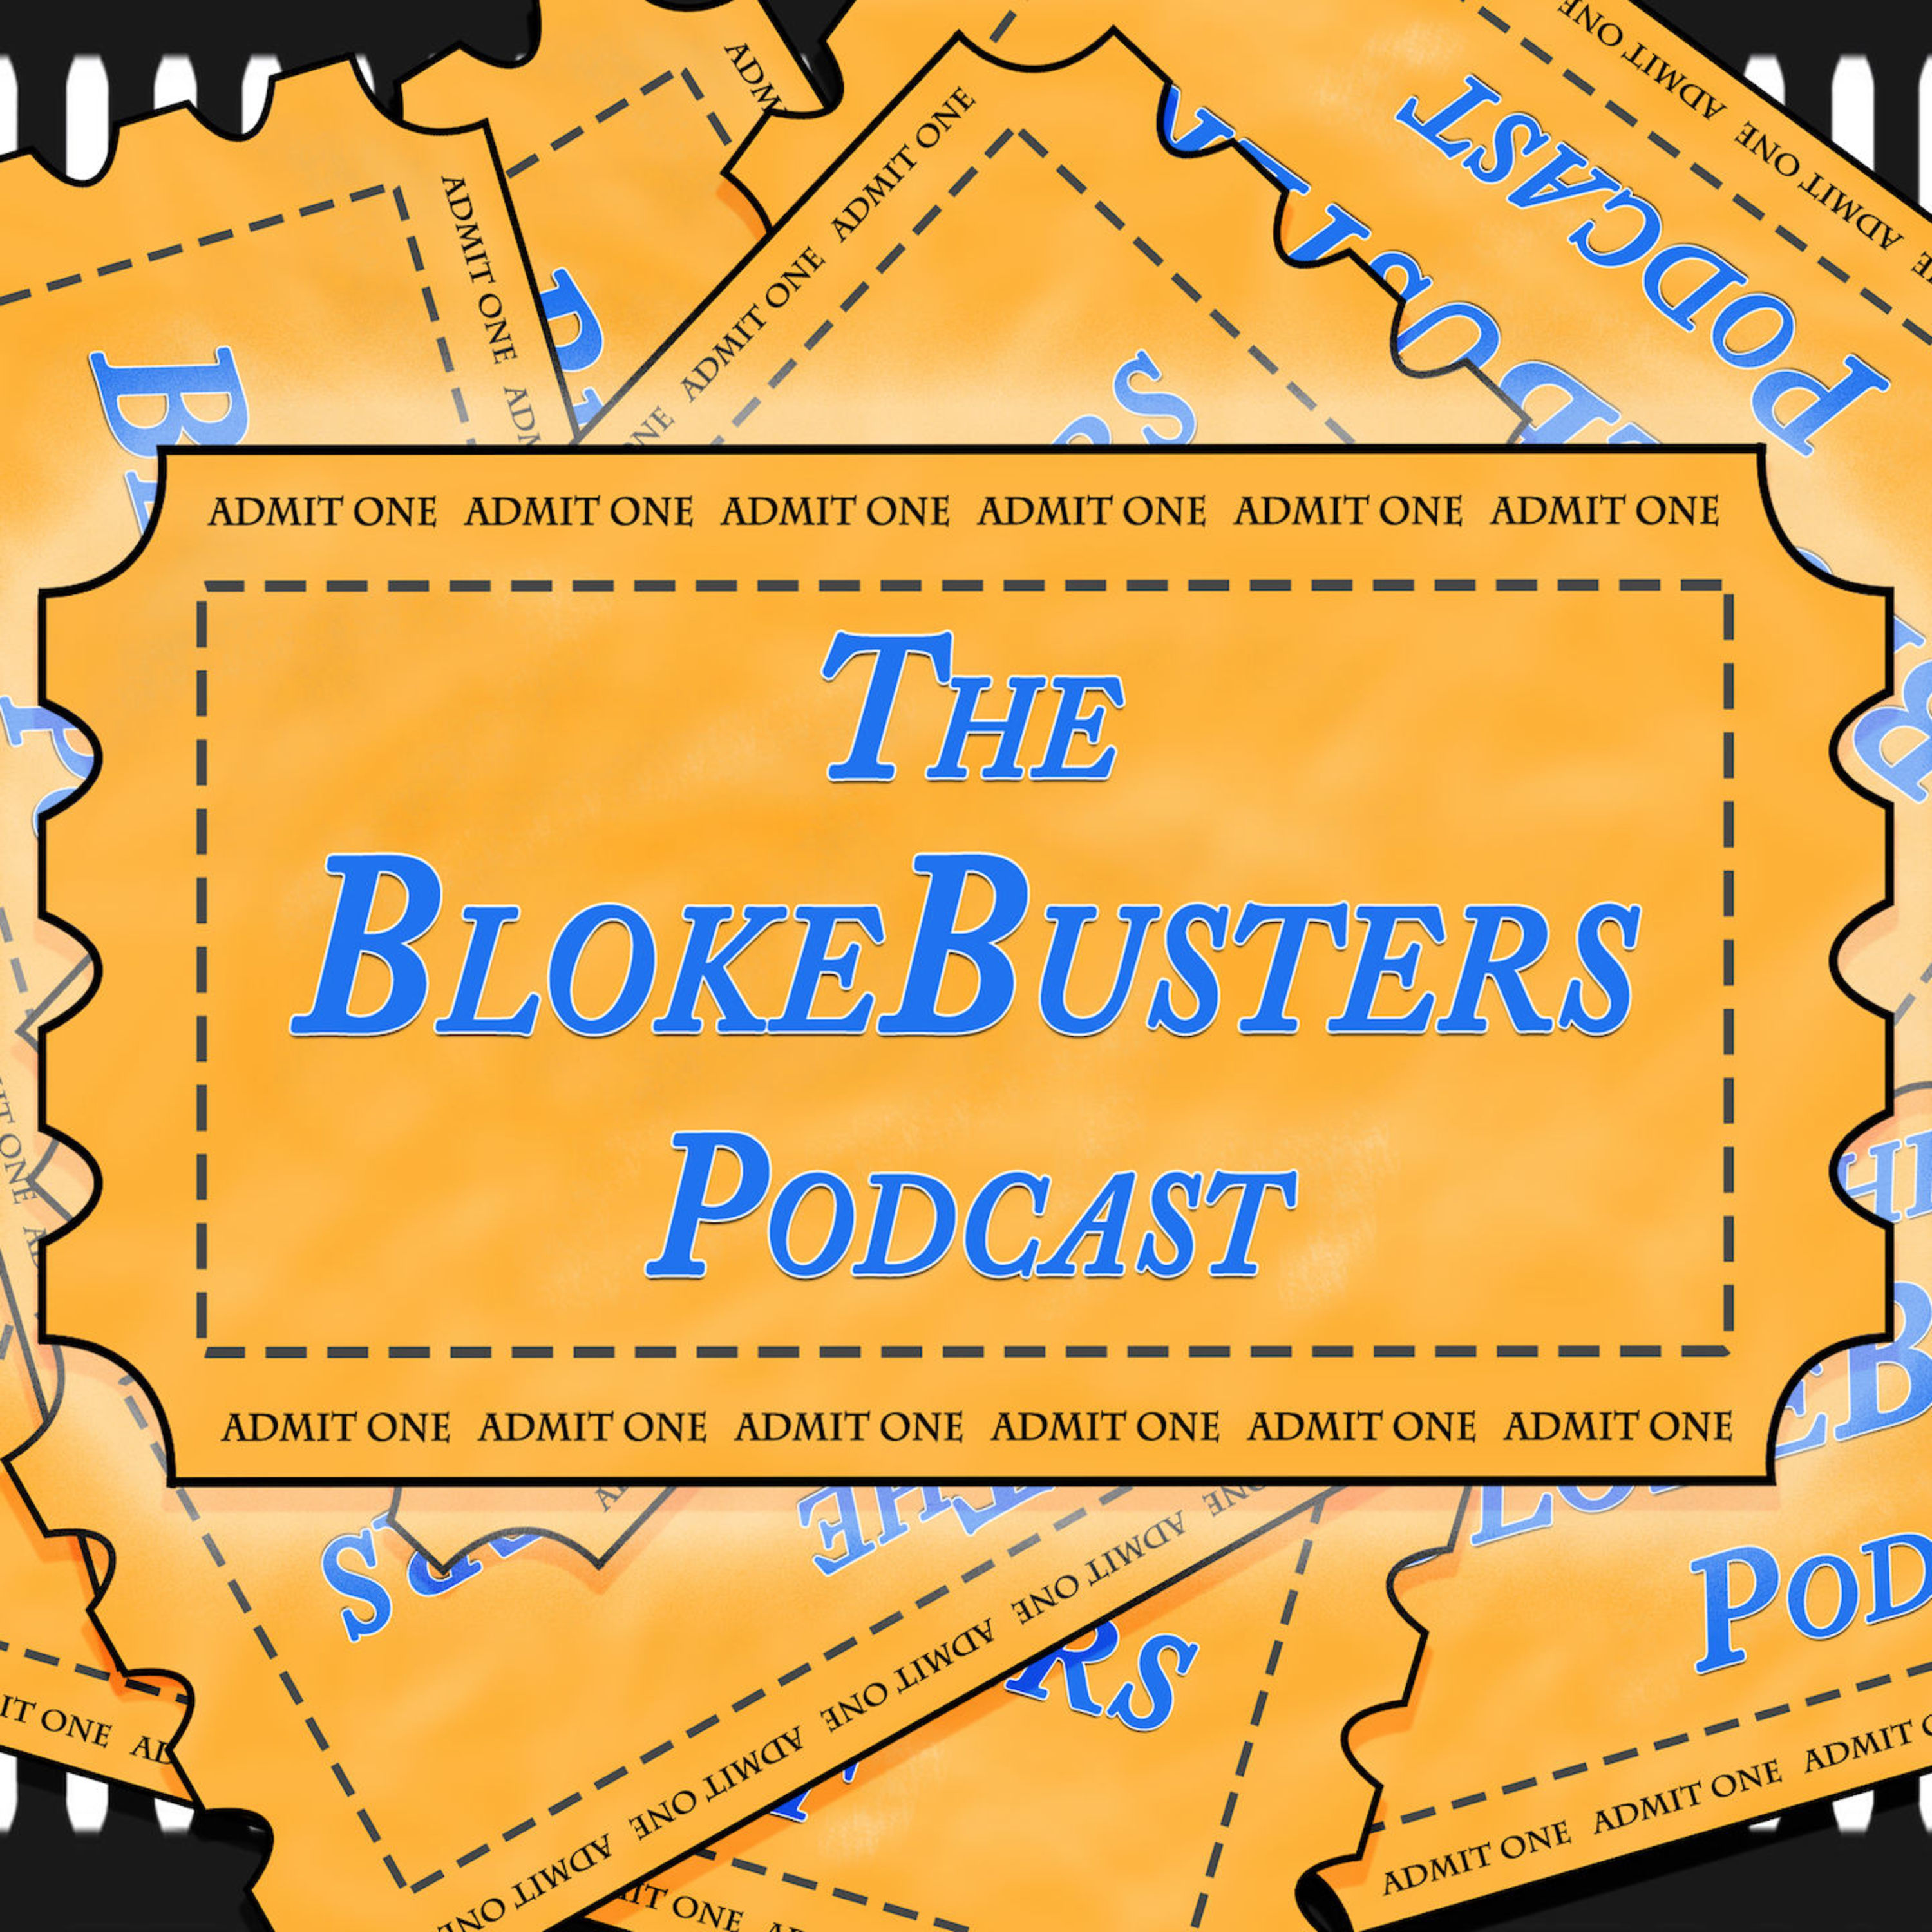 <![CDATA[The BlokeBusters Podcast]]>